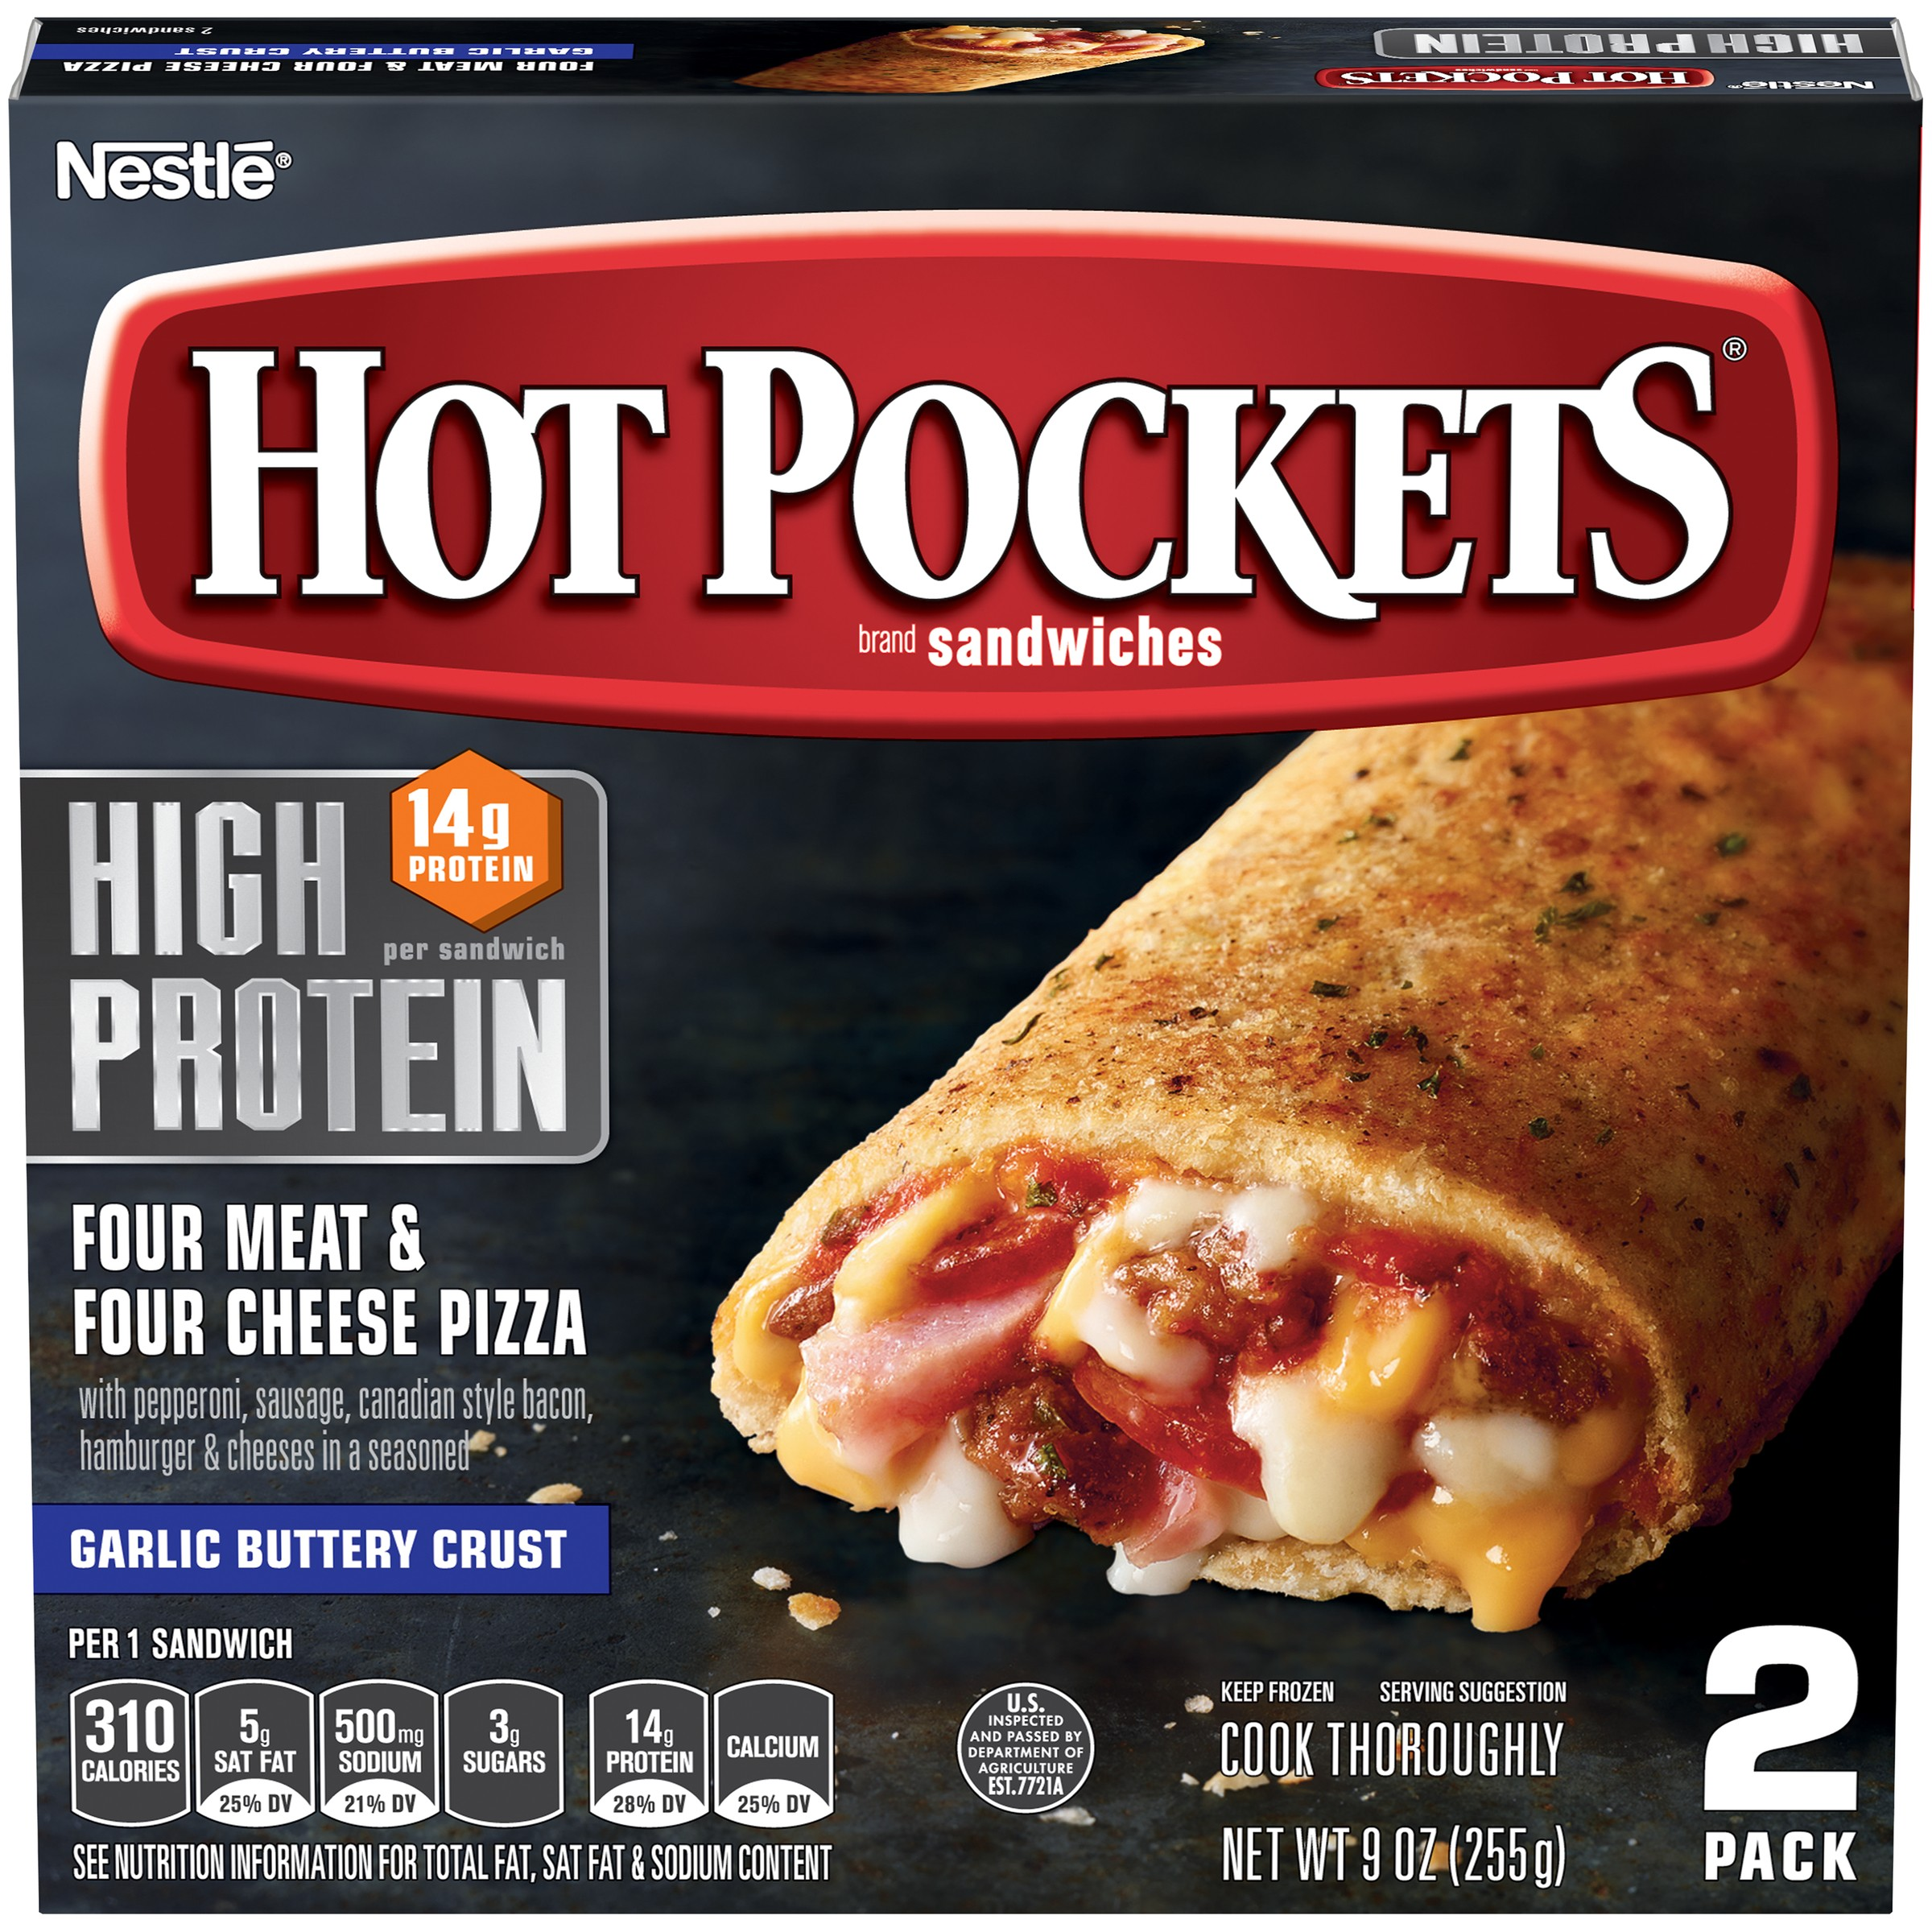 HOT POCKETS Frozen Sandwiches Four Meat & Four Cheese Pizza 2-Pack